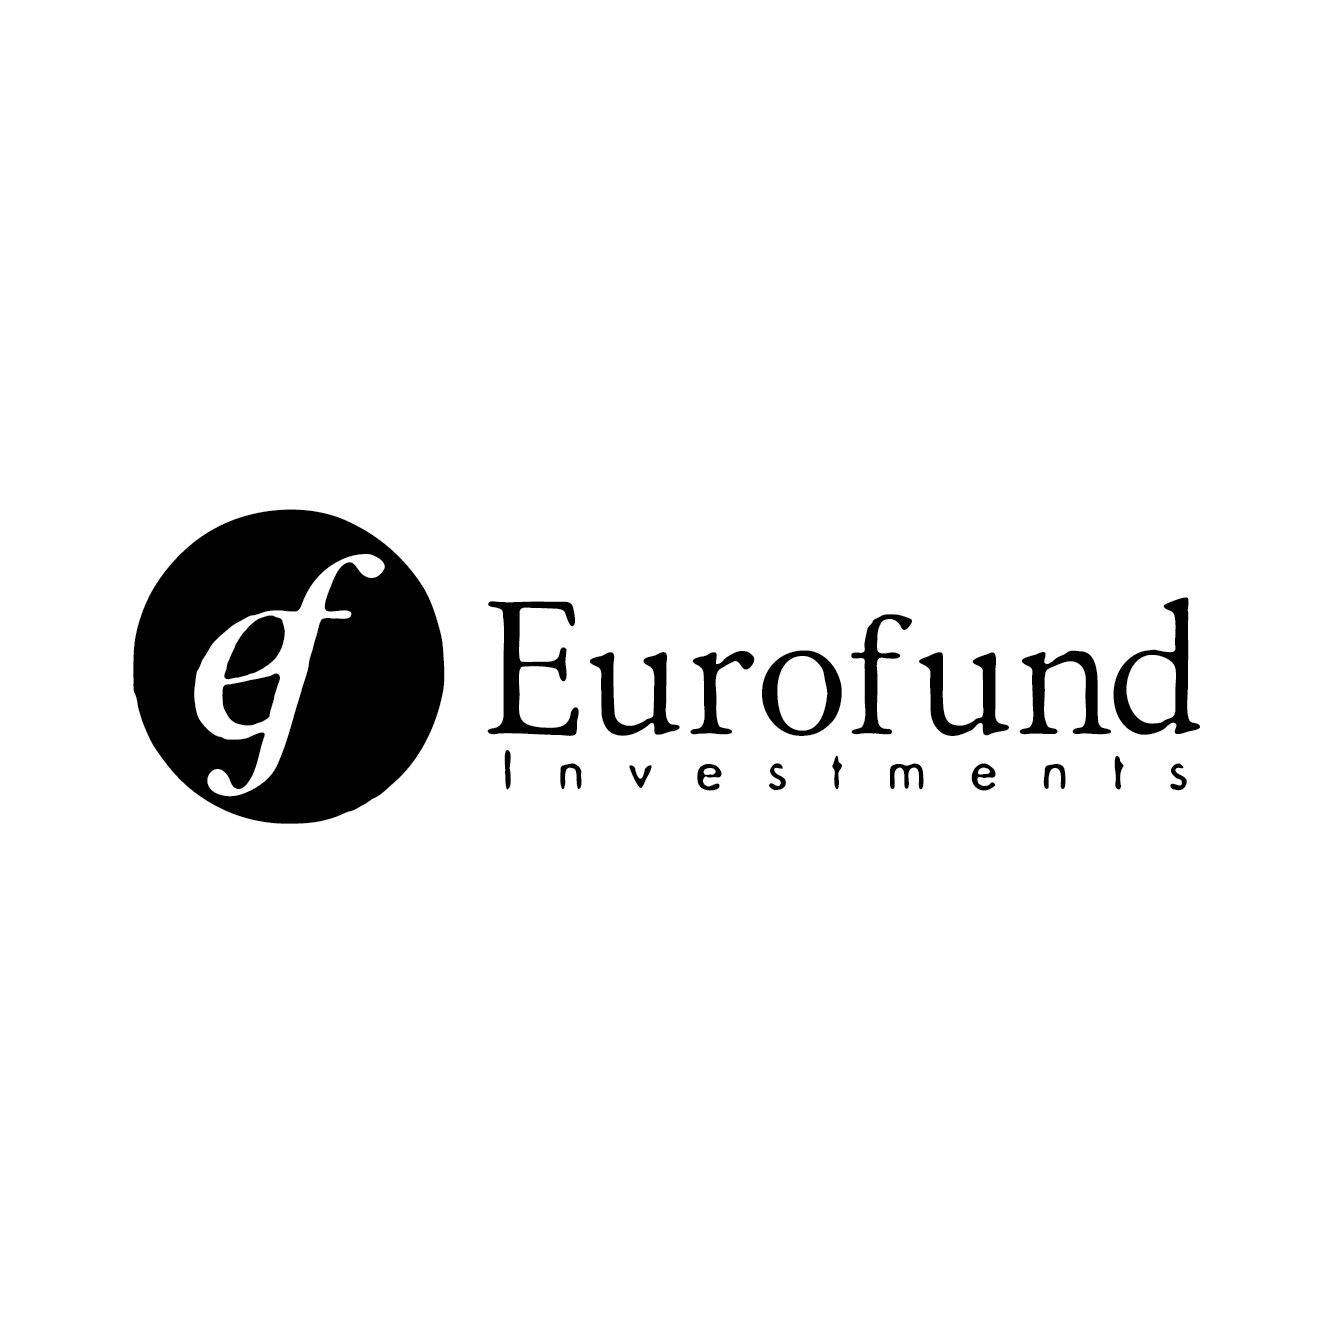 Eurofund investments paternal definition gold backed crypto currency stocks